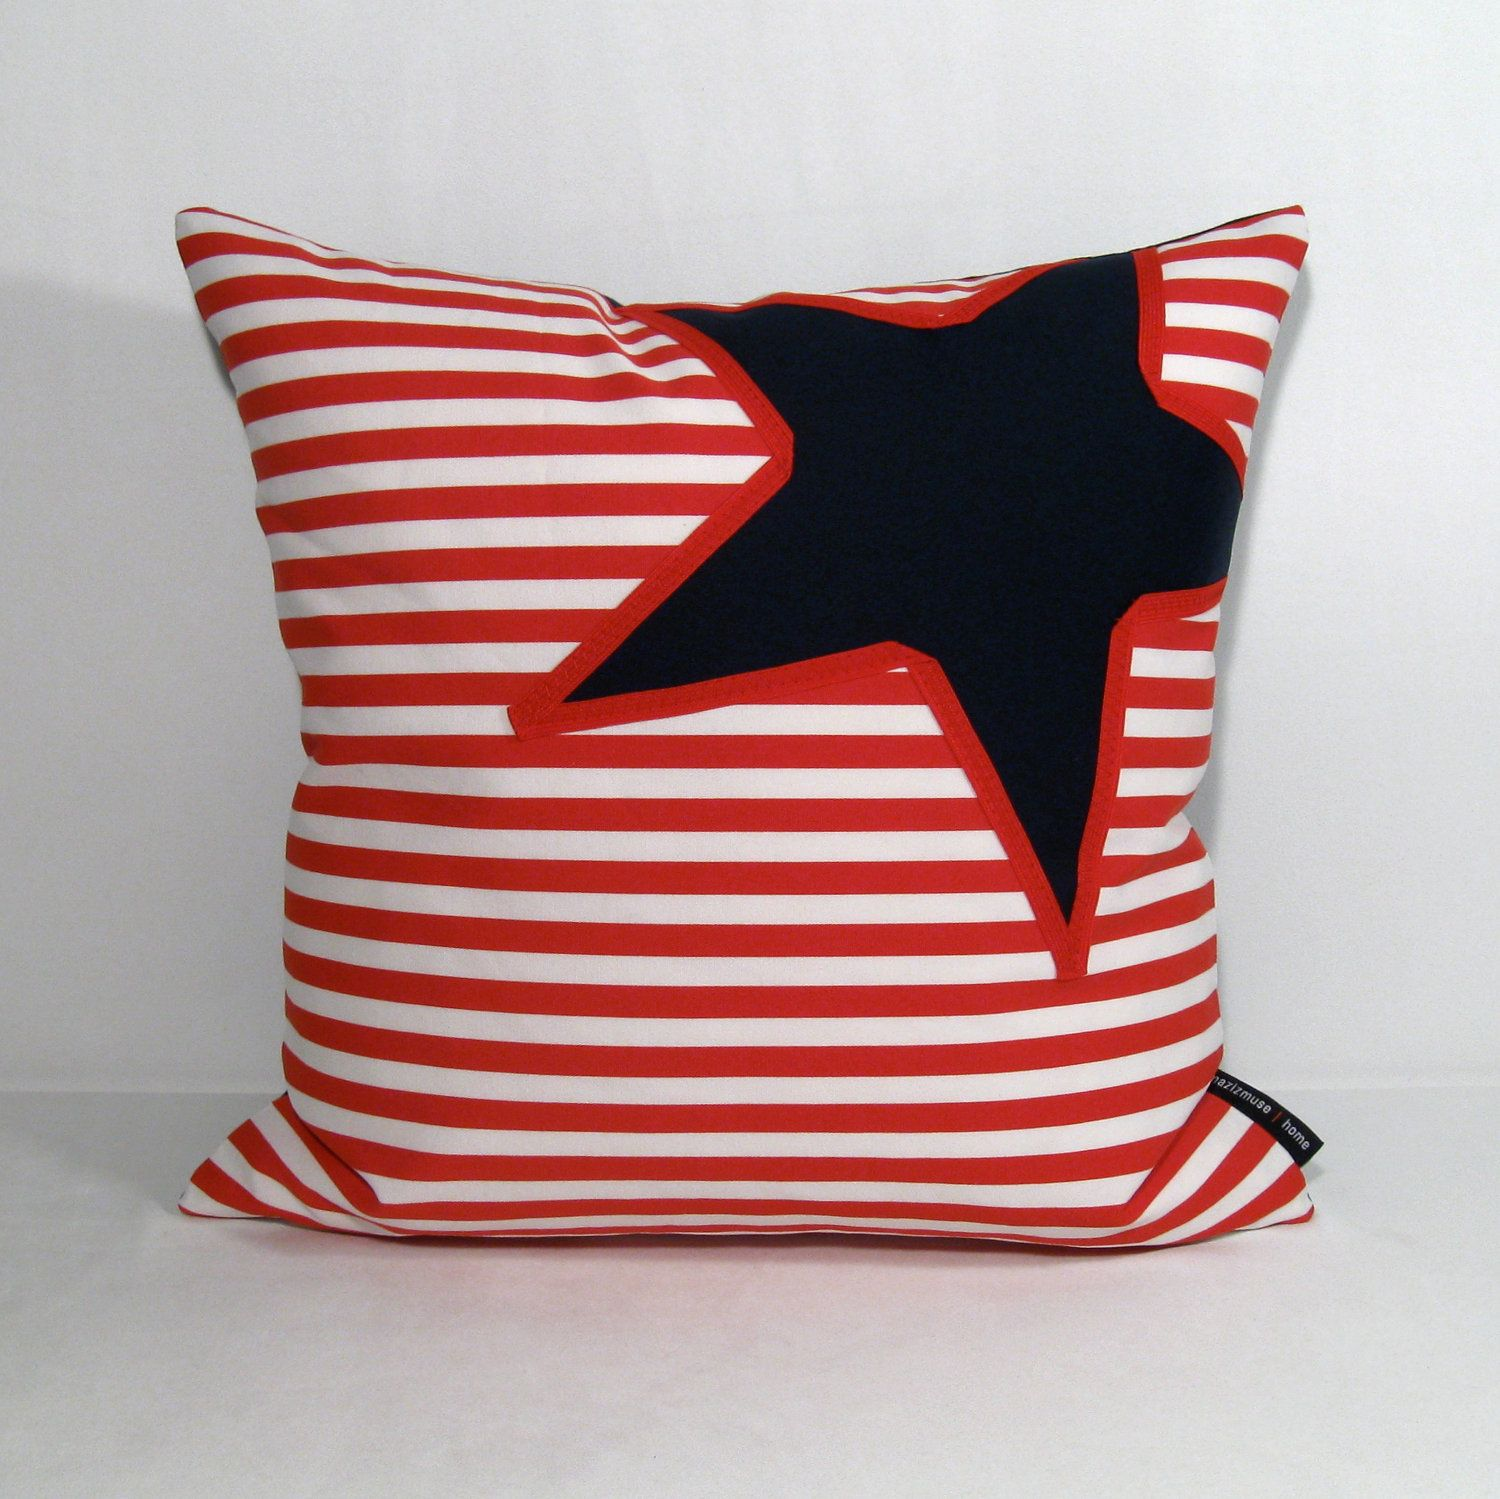 Nautical Decorative Pillow Covers : Nautical Pillow Cover - Red White Blue - Decorative Cushion - Navy Star Stripe 16 inch. $45.00 ...